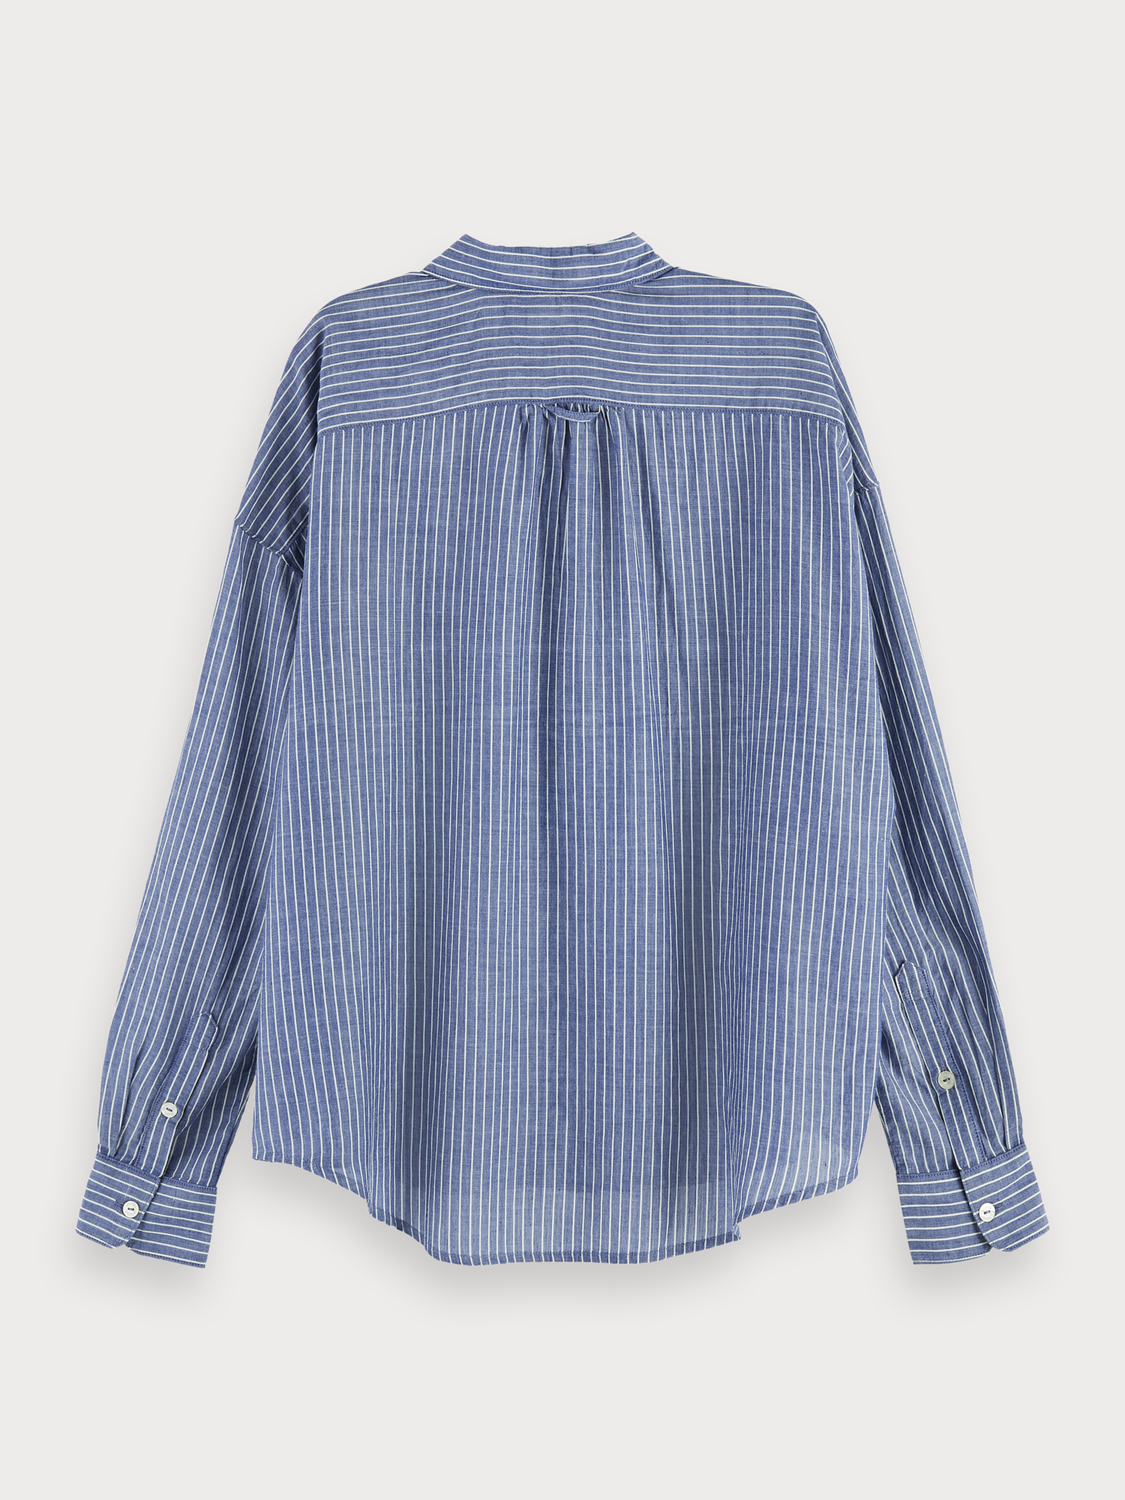 Mujer Long sleeve striped button up shirt